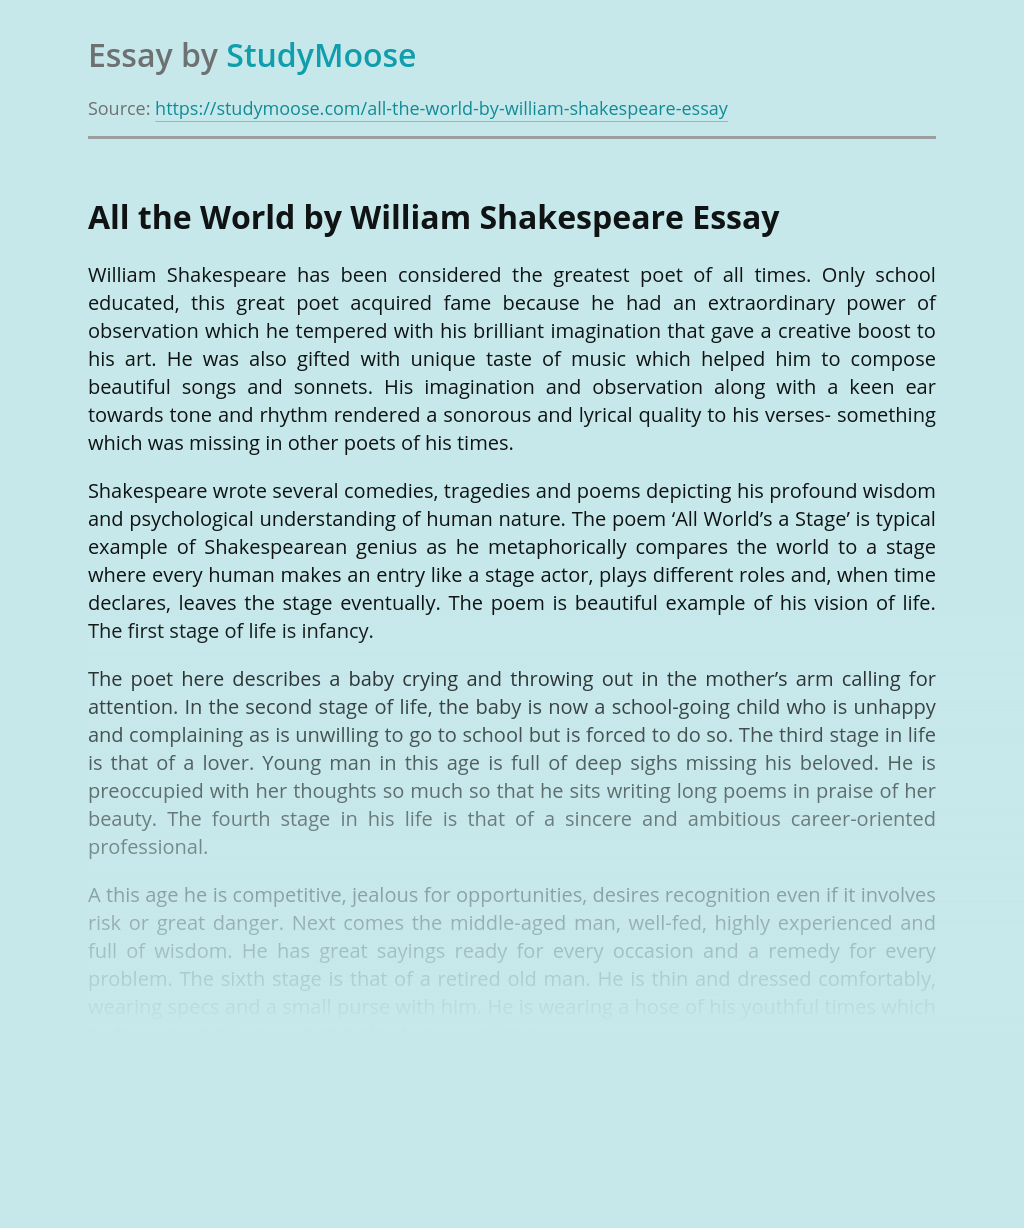 All the World by William Shakespeare